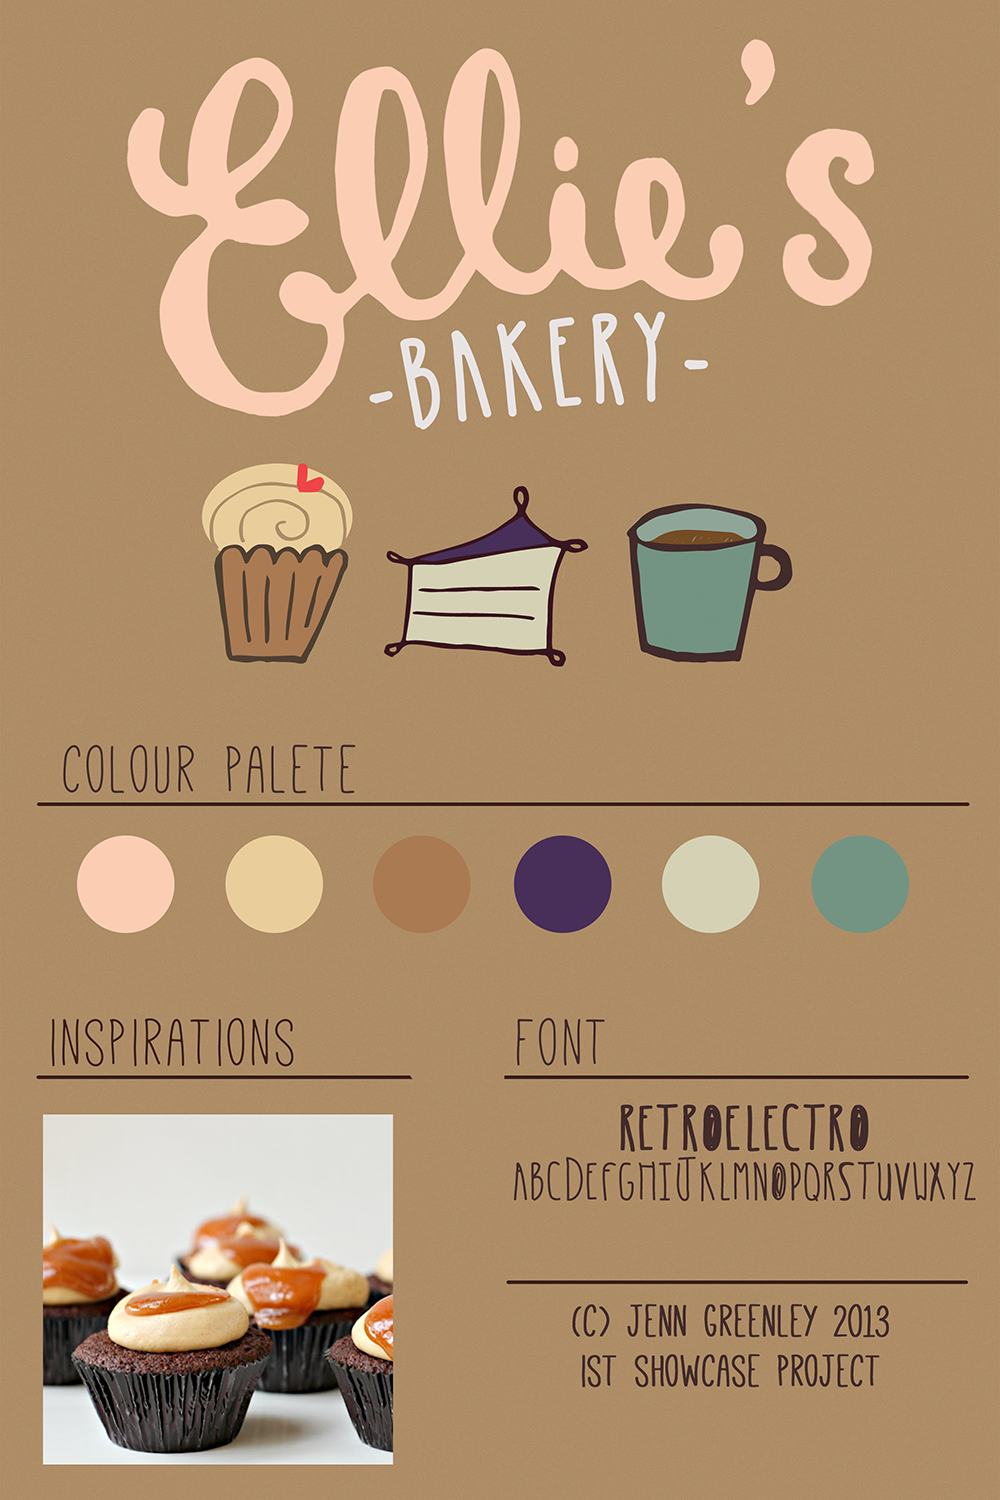 Ellie's bakery branding for school showcase project | DESIGN